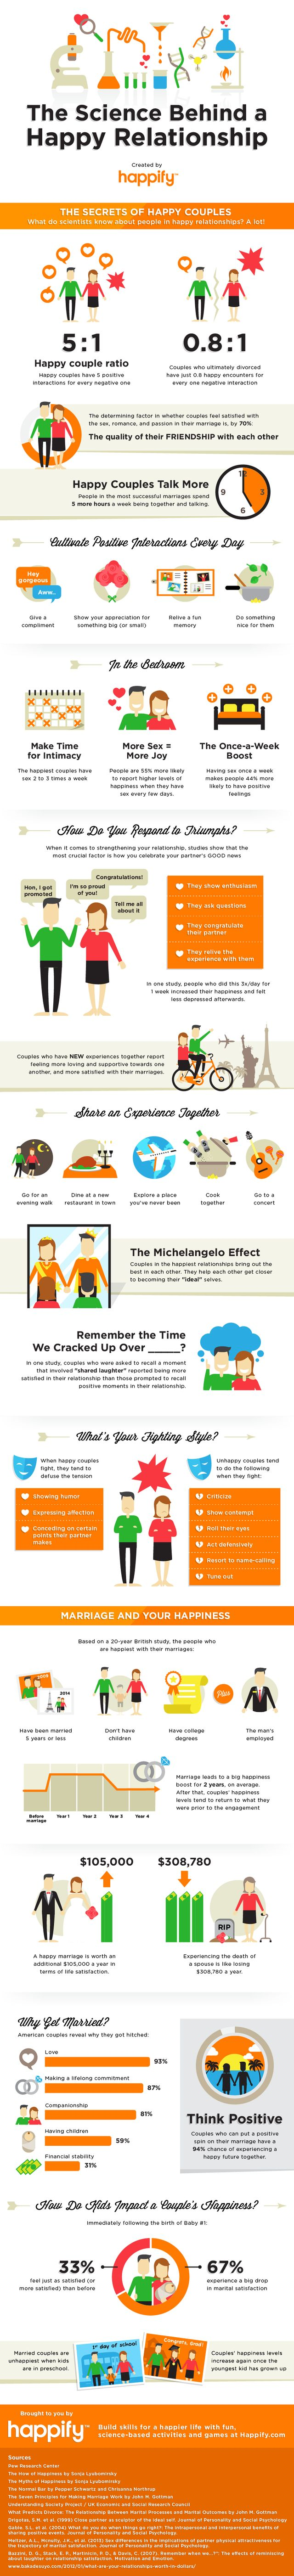 The Science Behind a Happy Relationship {Infographic}